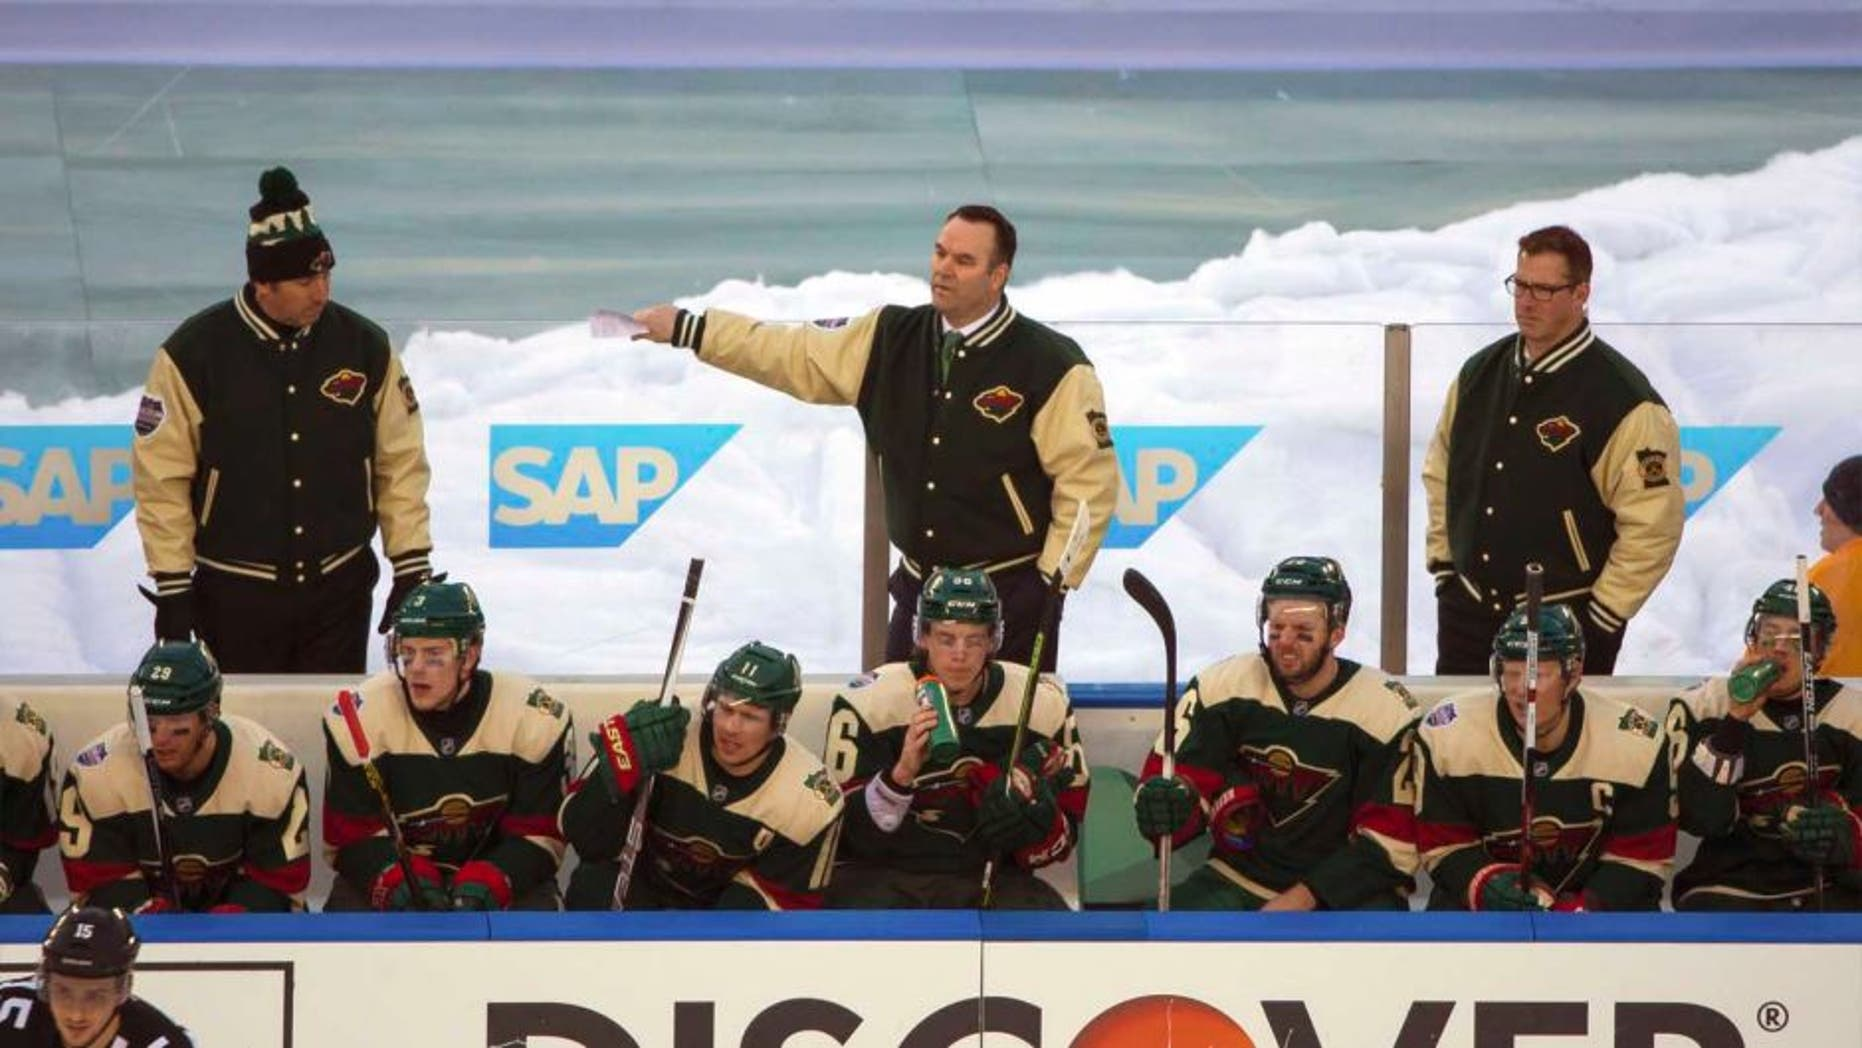 Minnesota Wild interim head coach John Torchetti stands behind the bench in the third period against the Chicago Blackhawks during a Stadium Series hockey game at TCF Bank Stadium in Minneapolis on Sunday, Feb. 21, 2016.